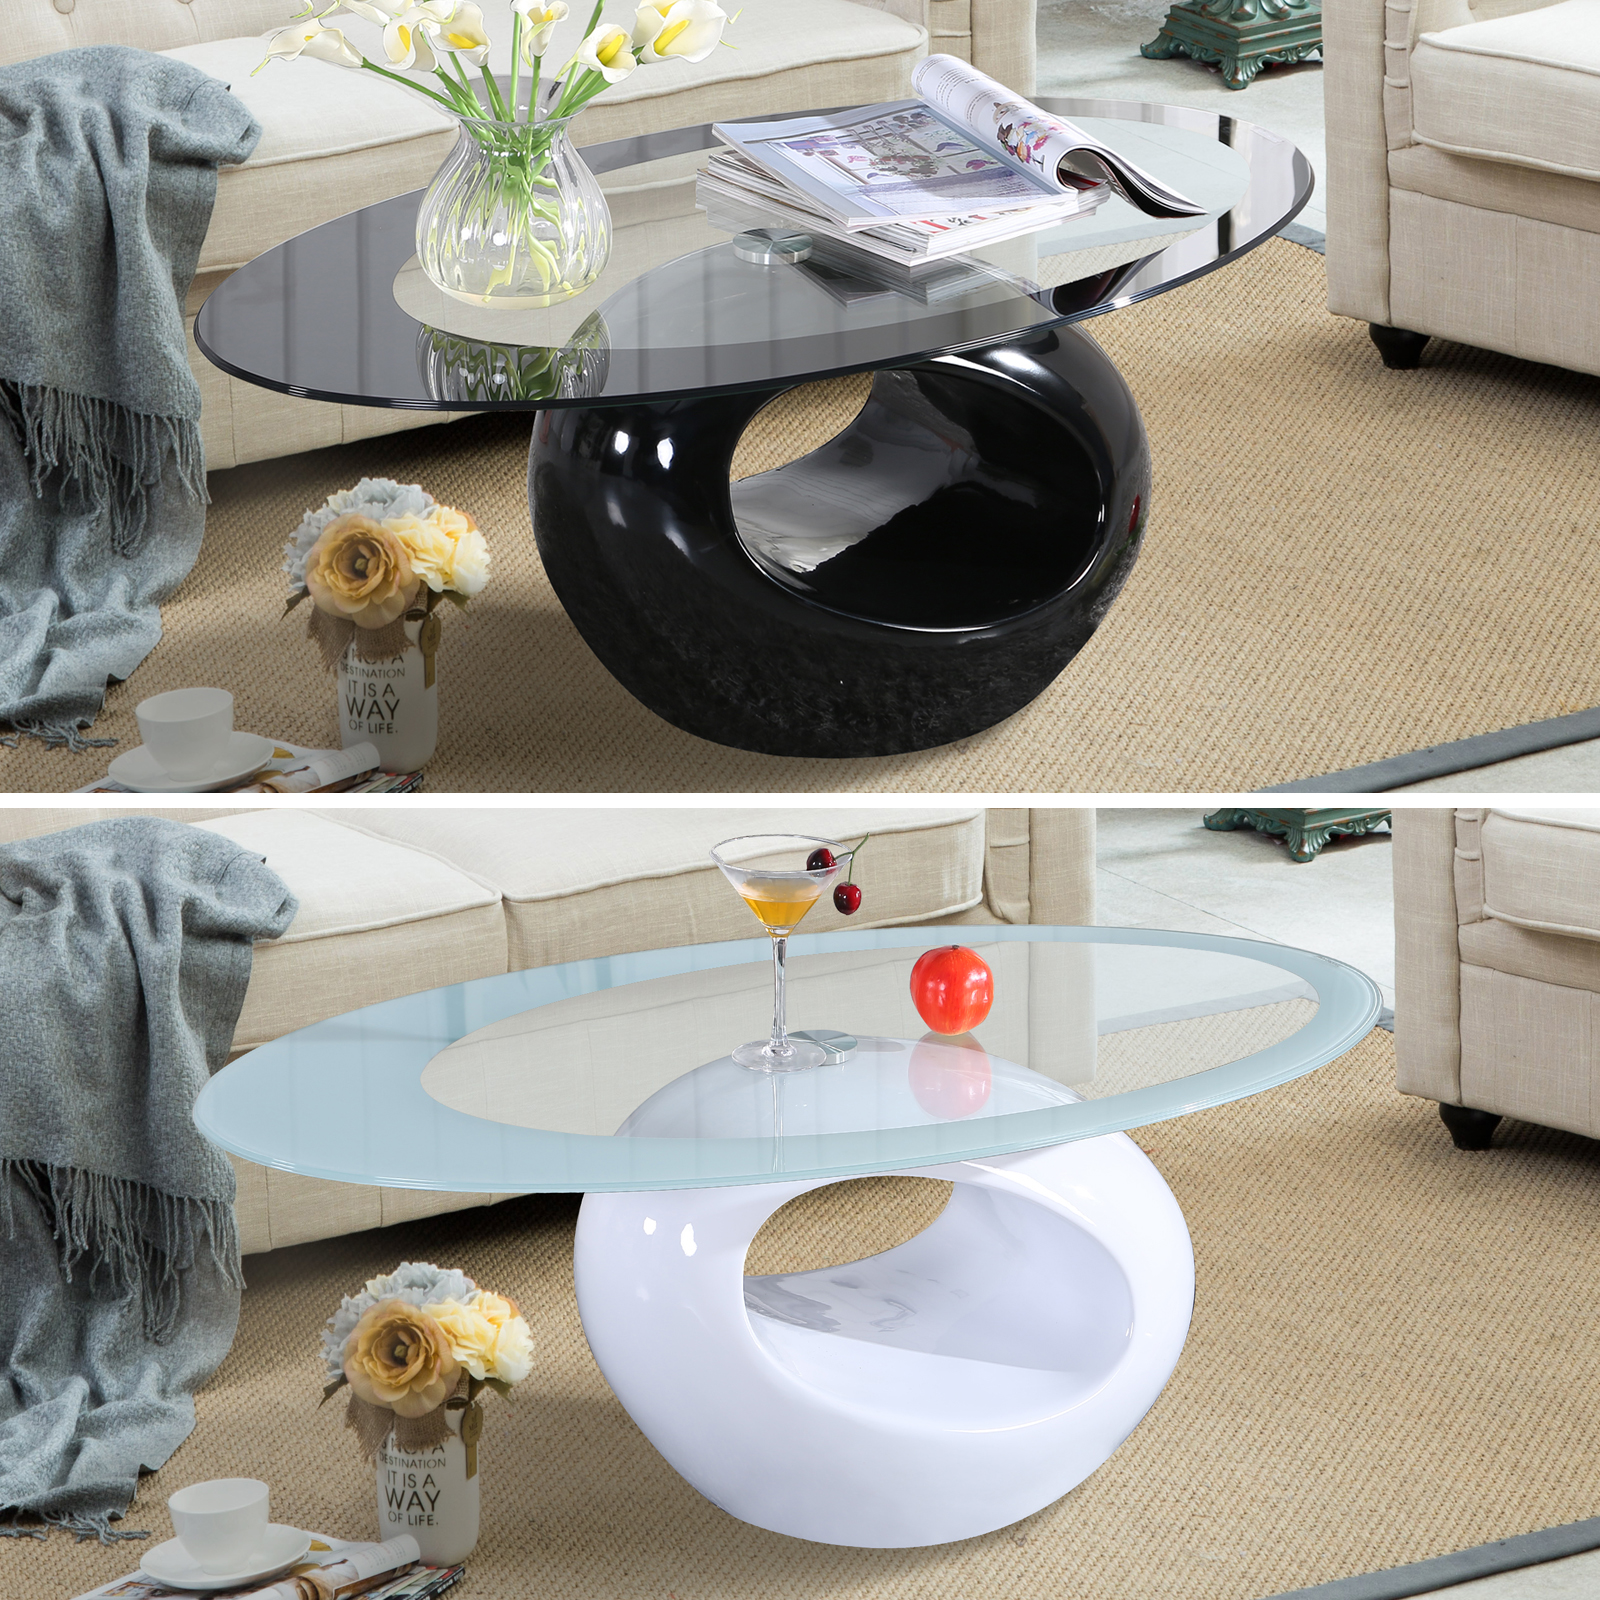 Oval Coffee Table Modern: Glass Oval Coffee Table Contemporary Modern Design Living